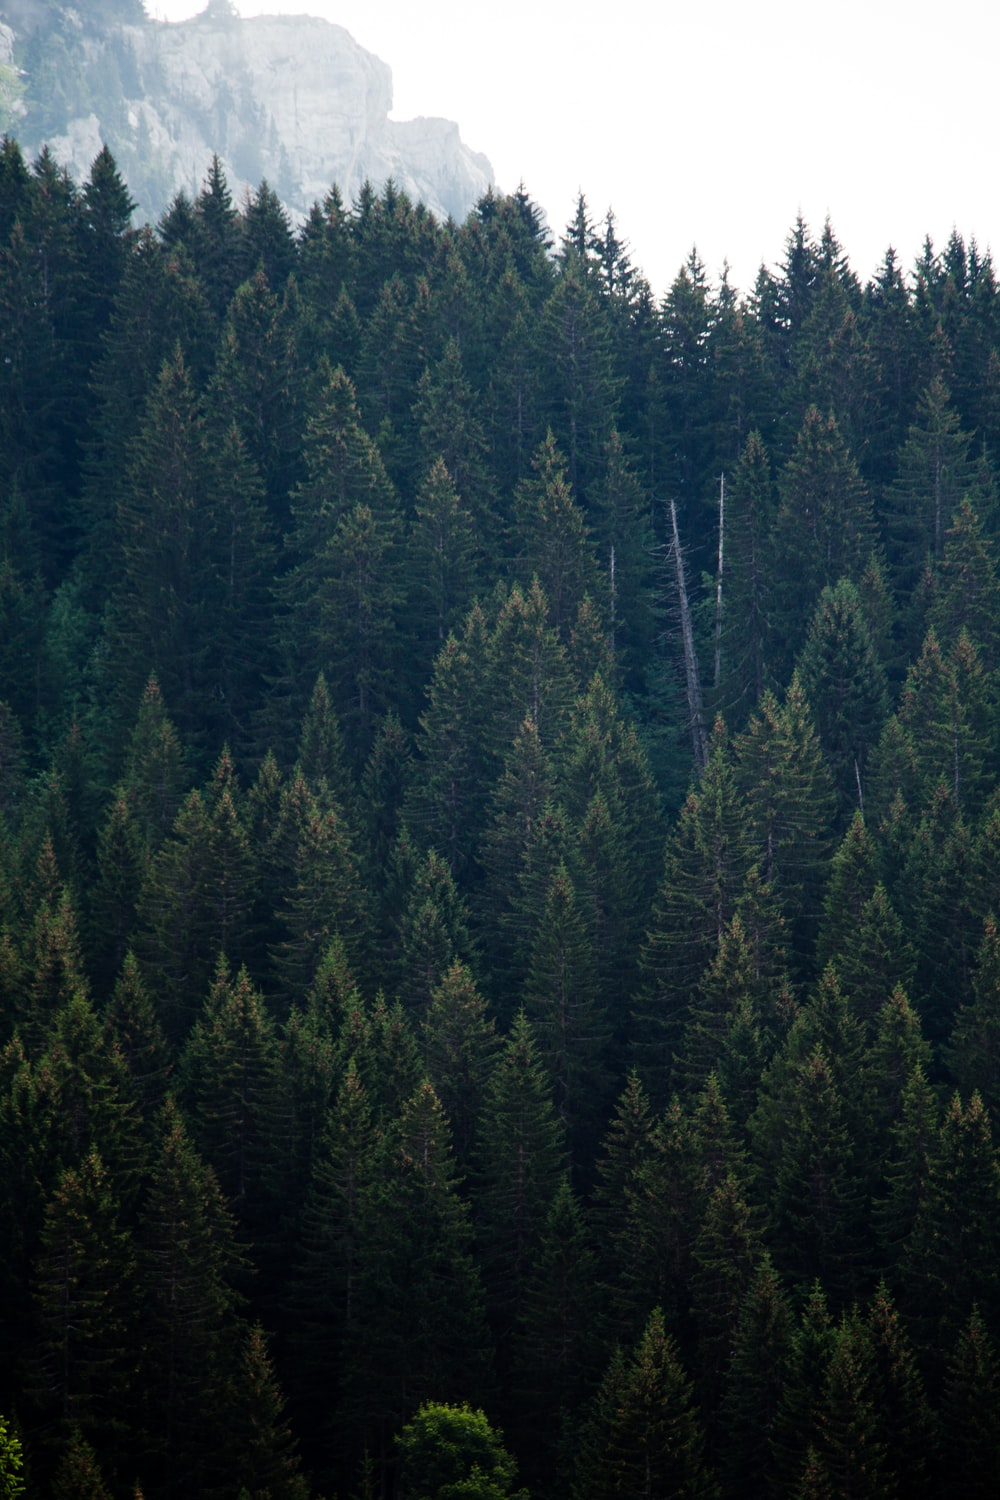 bird's eye photography of forest